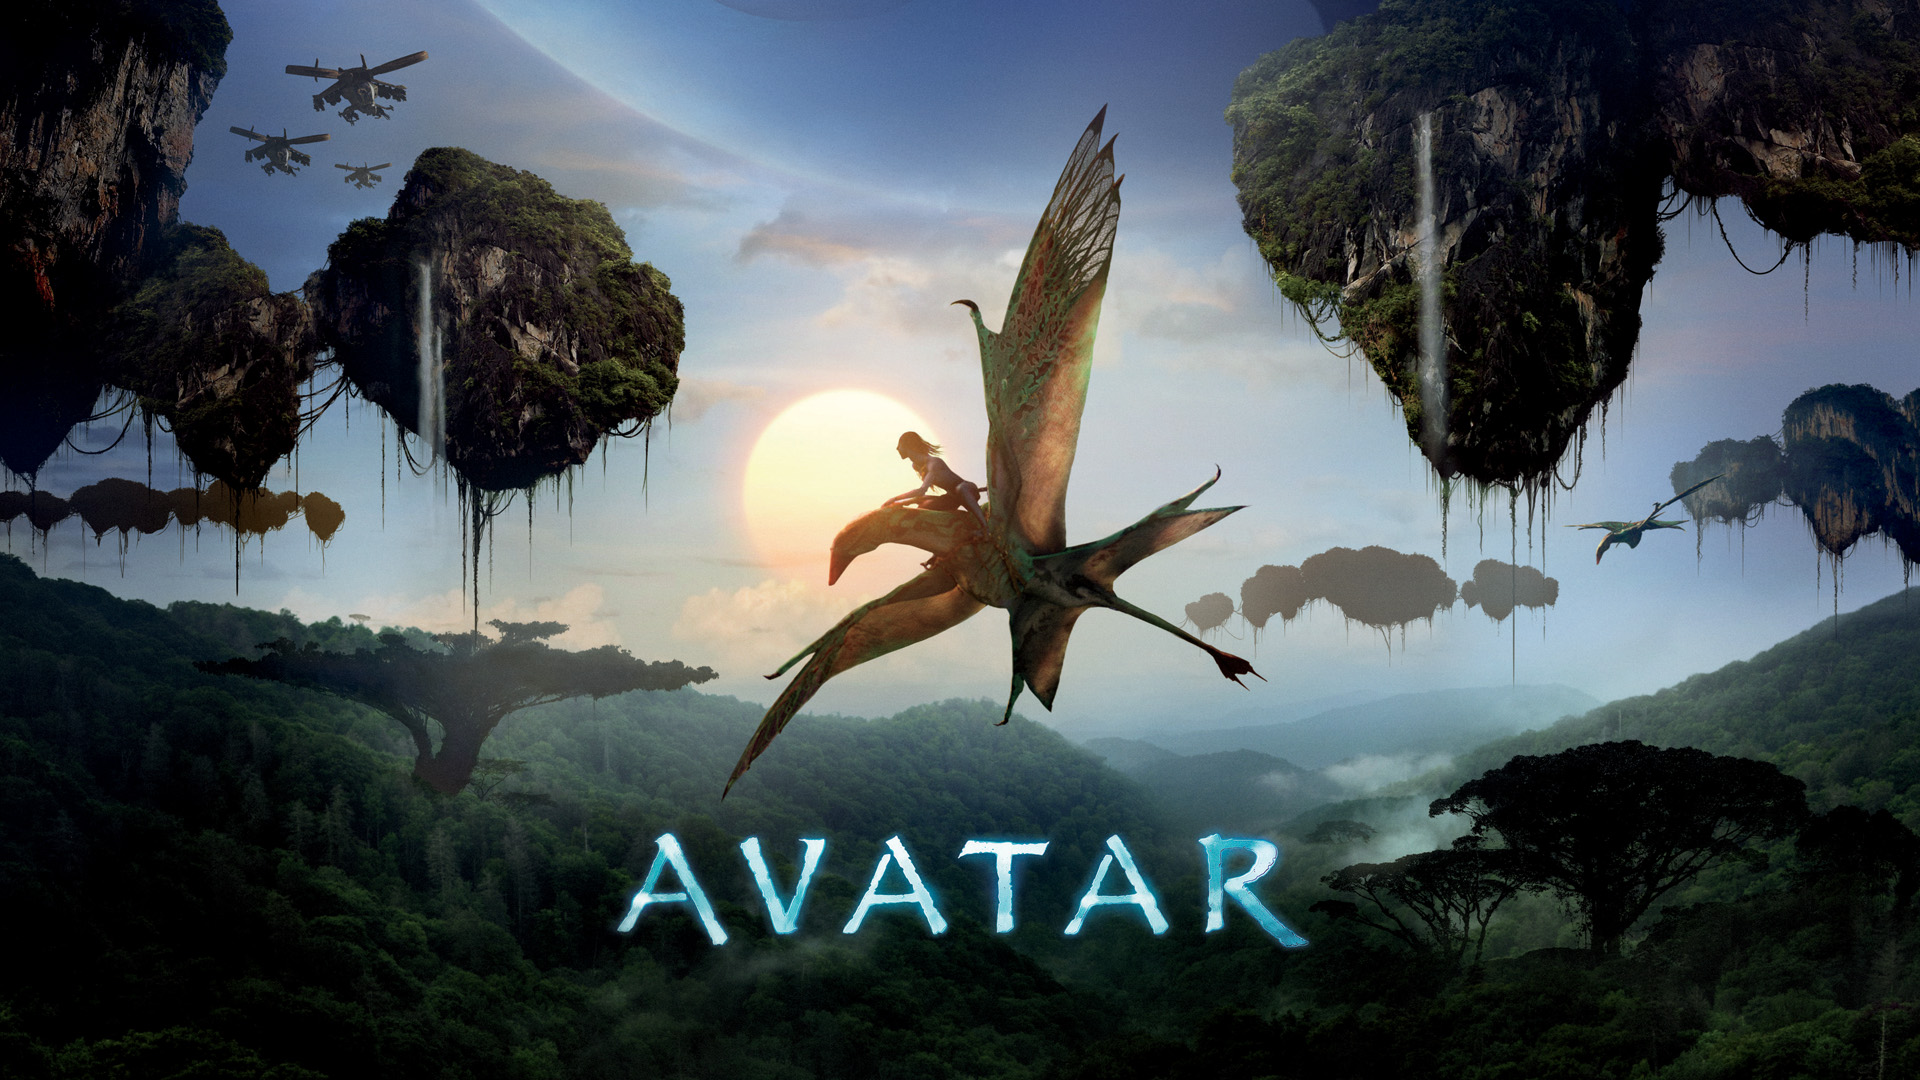 Avatar movie hd wallpaper